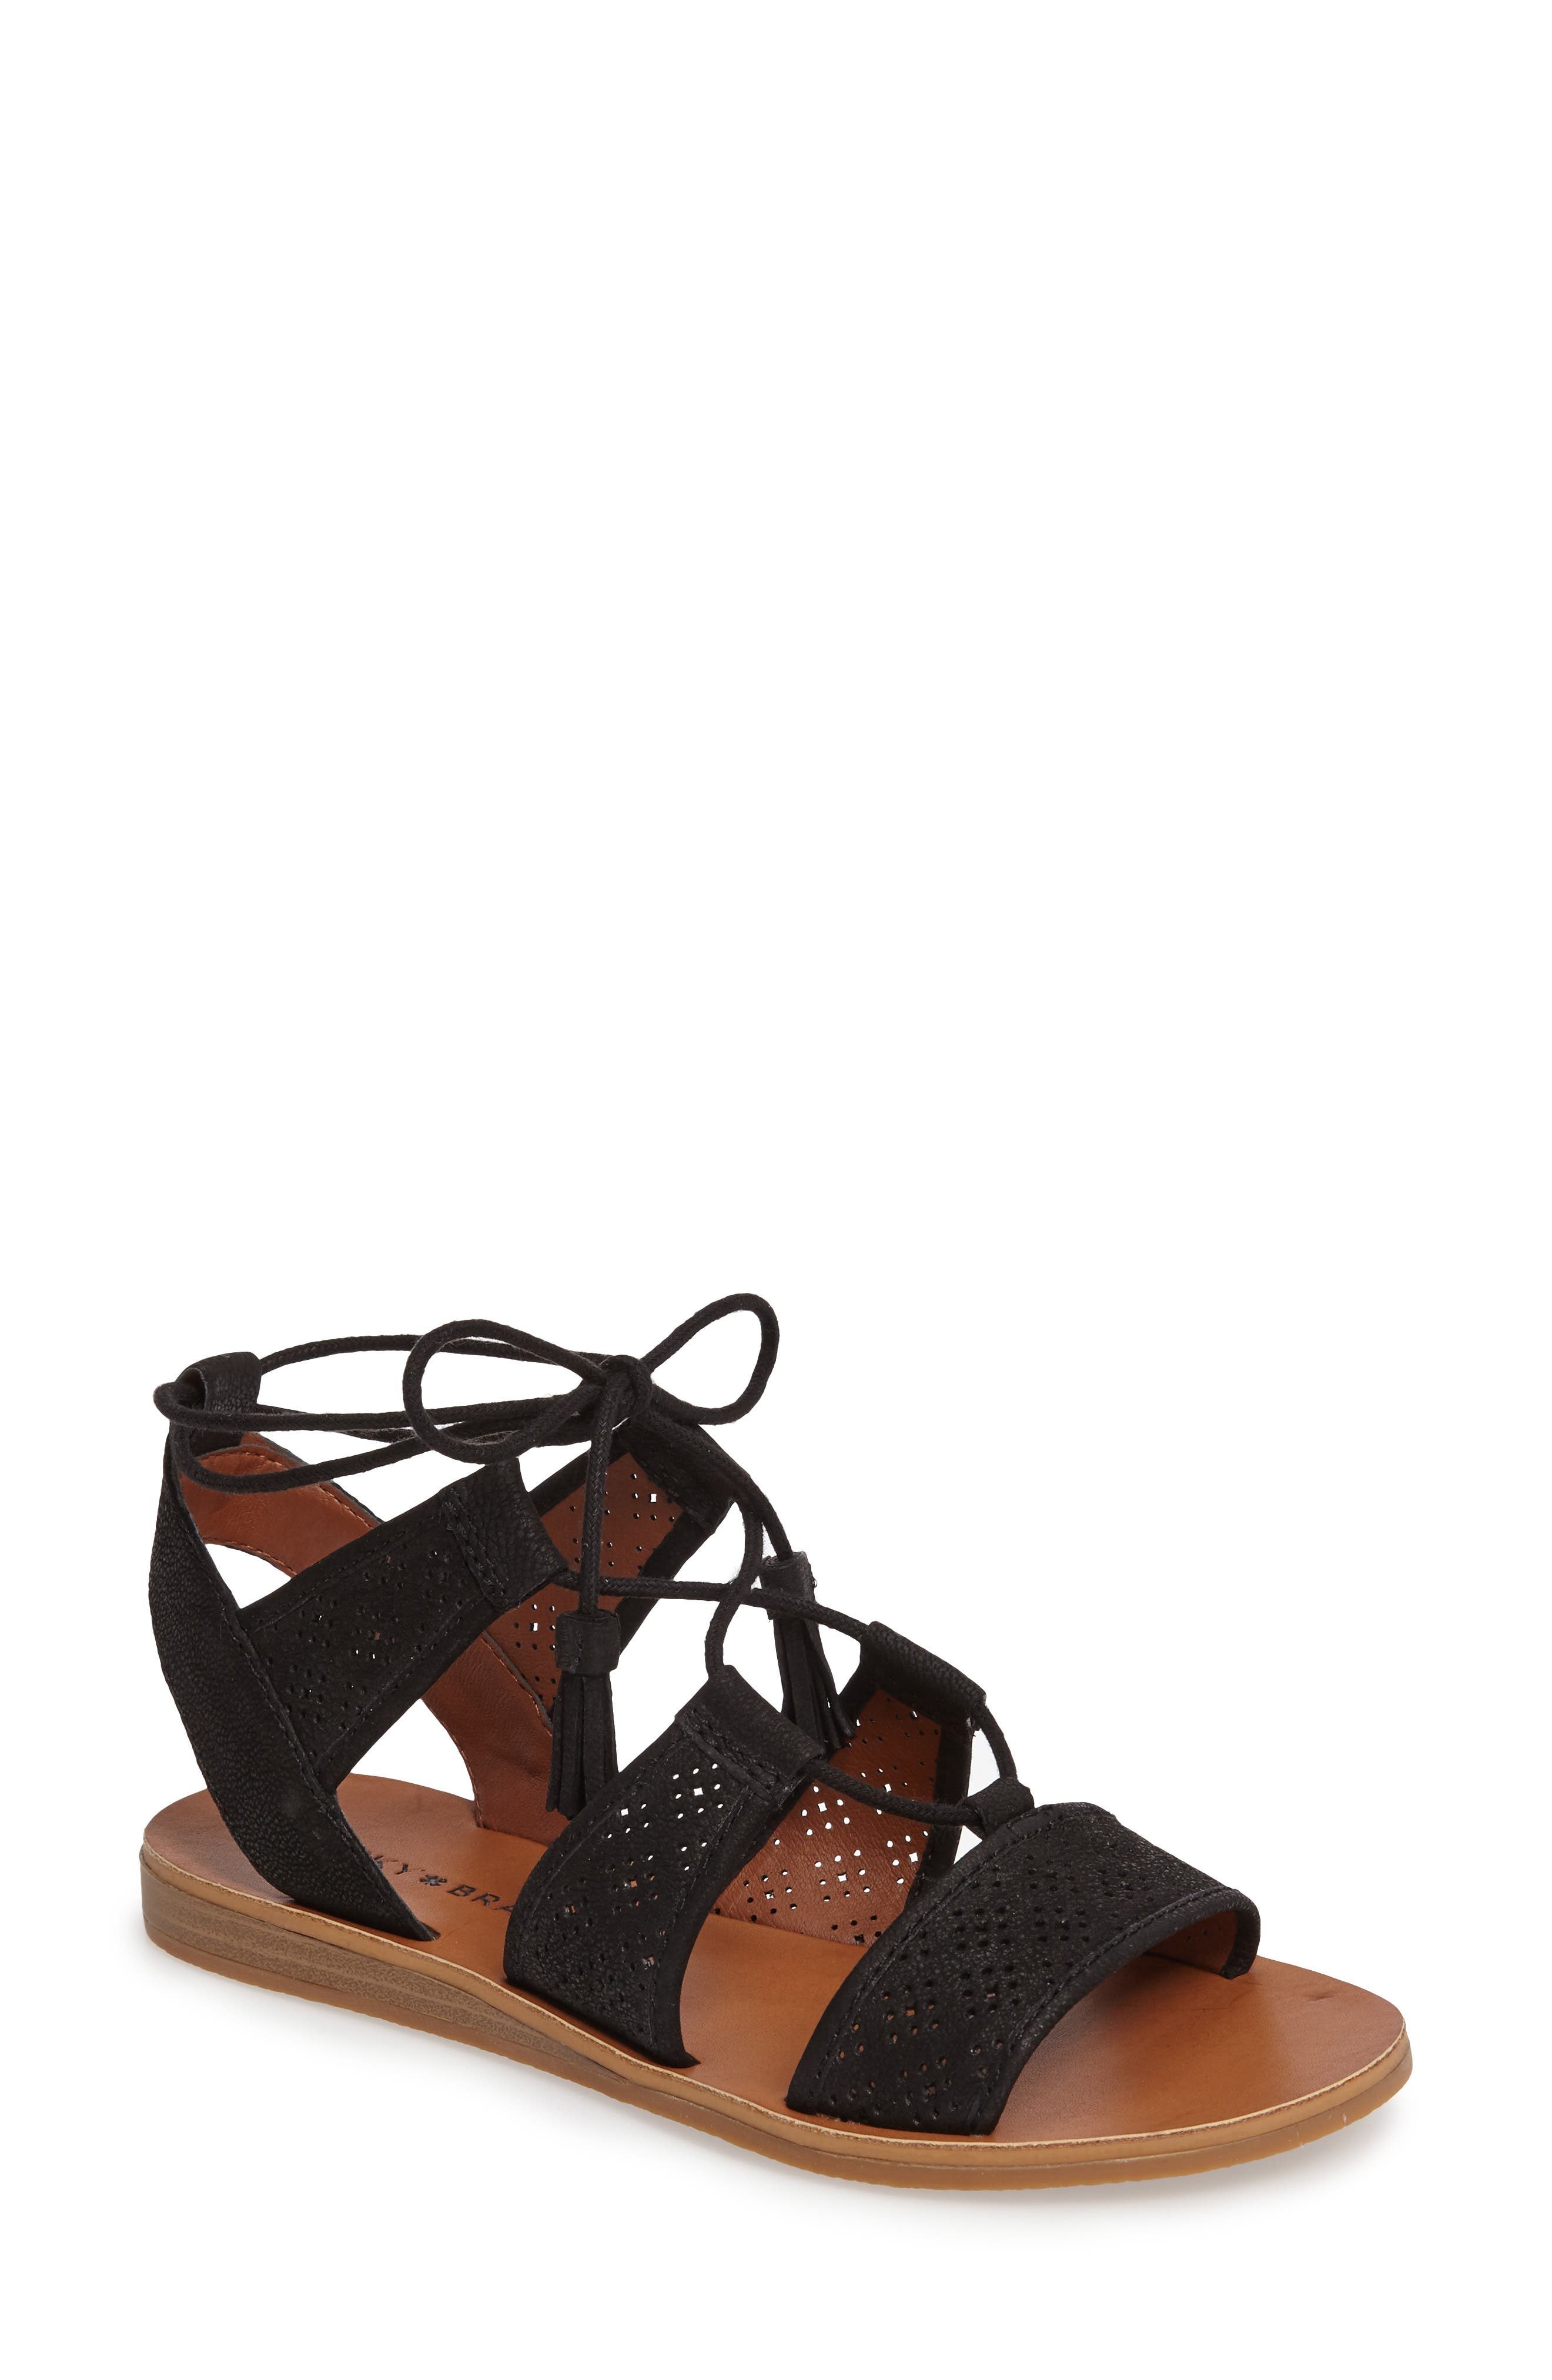 Brenny Sandal,                         Main,                         color,